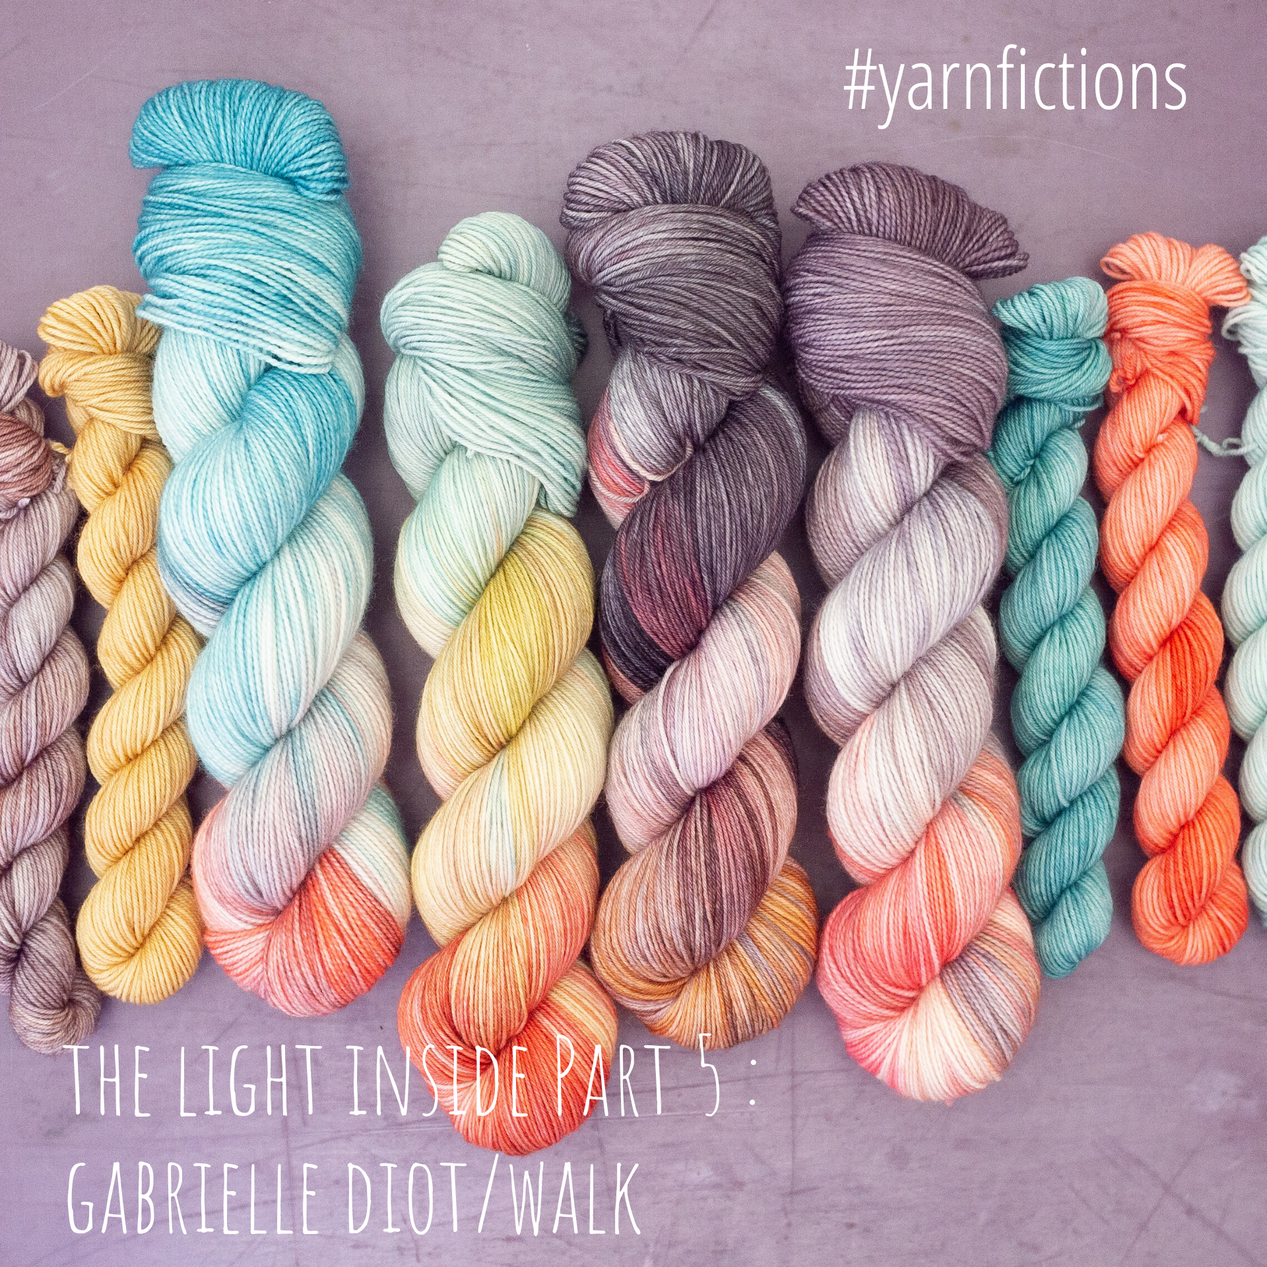 meadowyarn - the light inside : 5 : gabrielle diot/walk